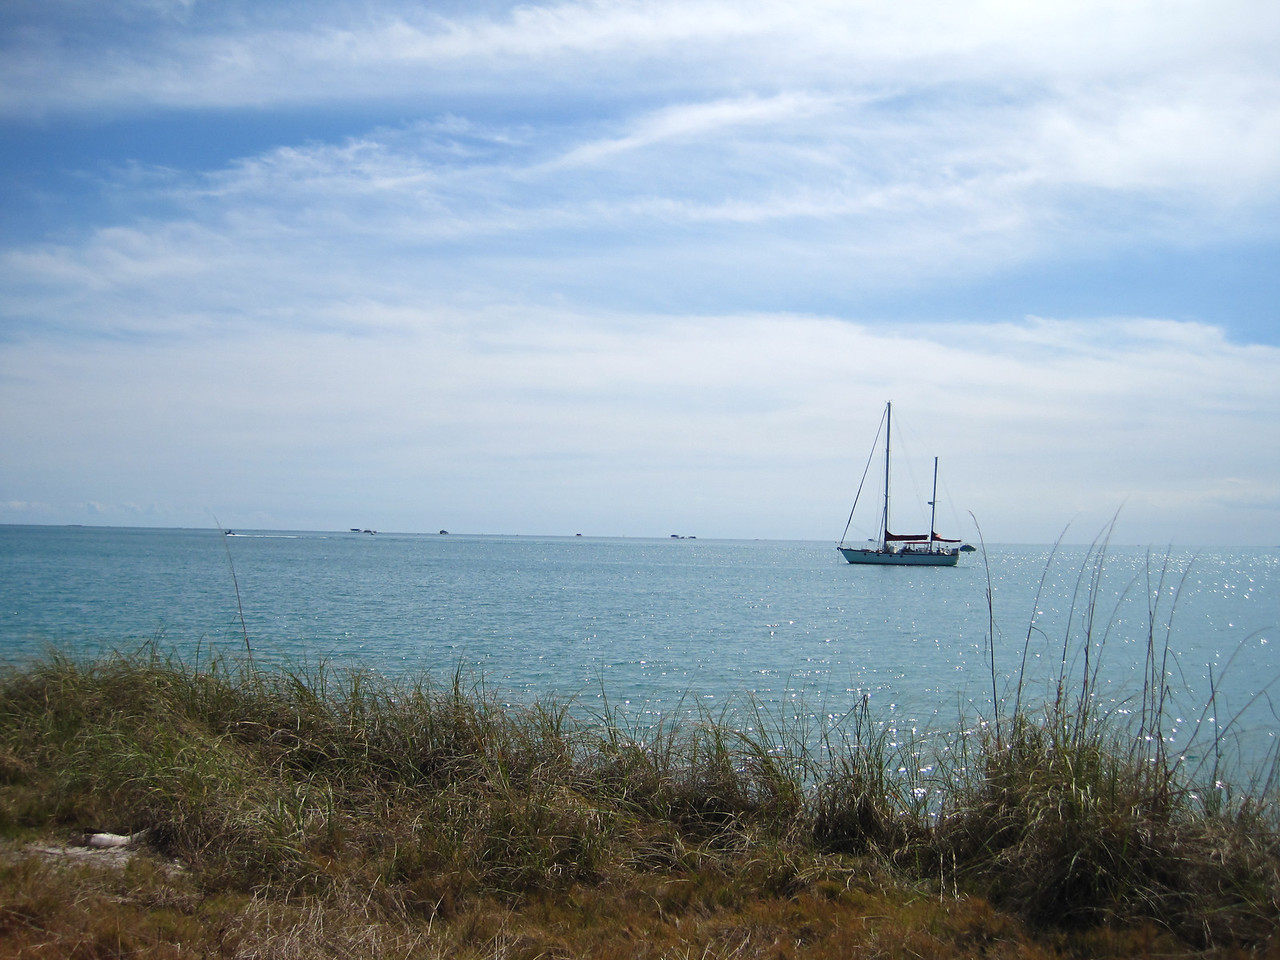 Looking out across Biscayne Bay from Key Biscayne